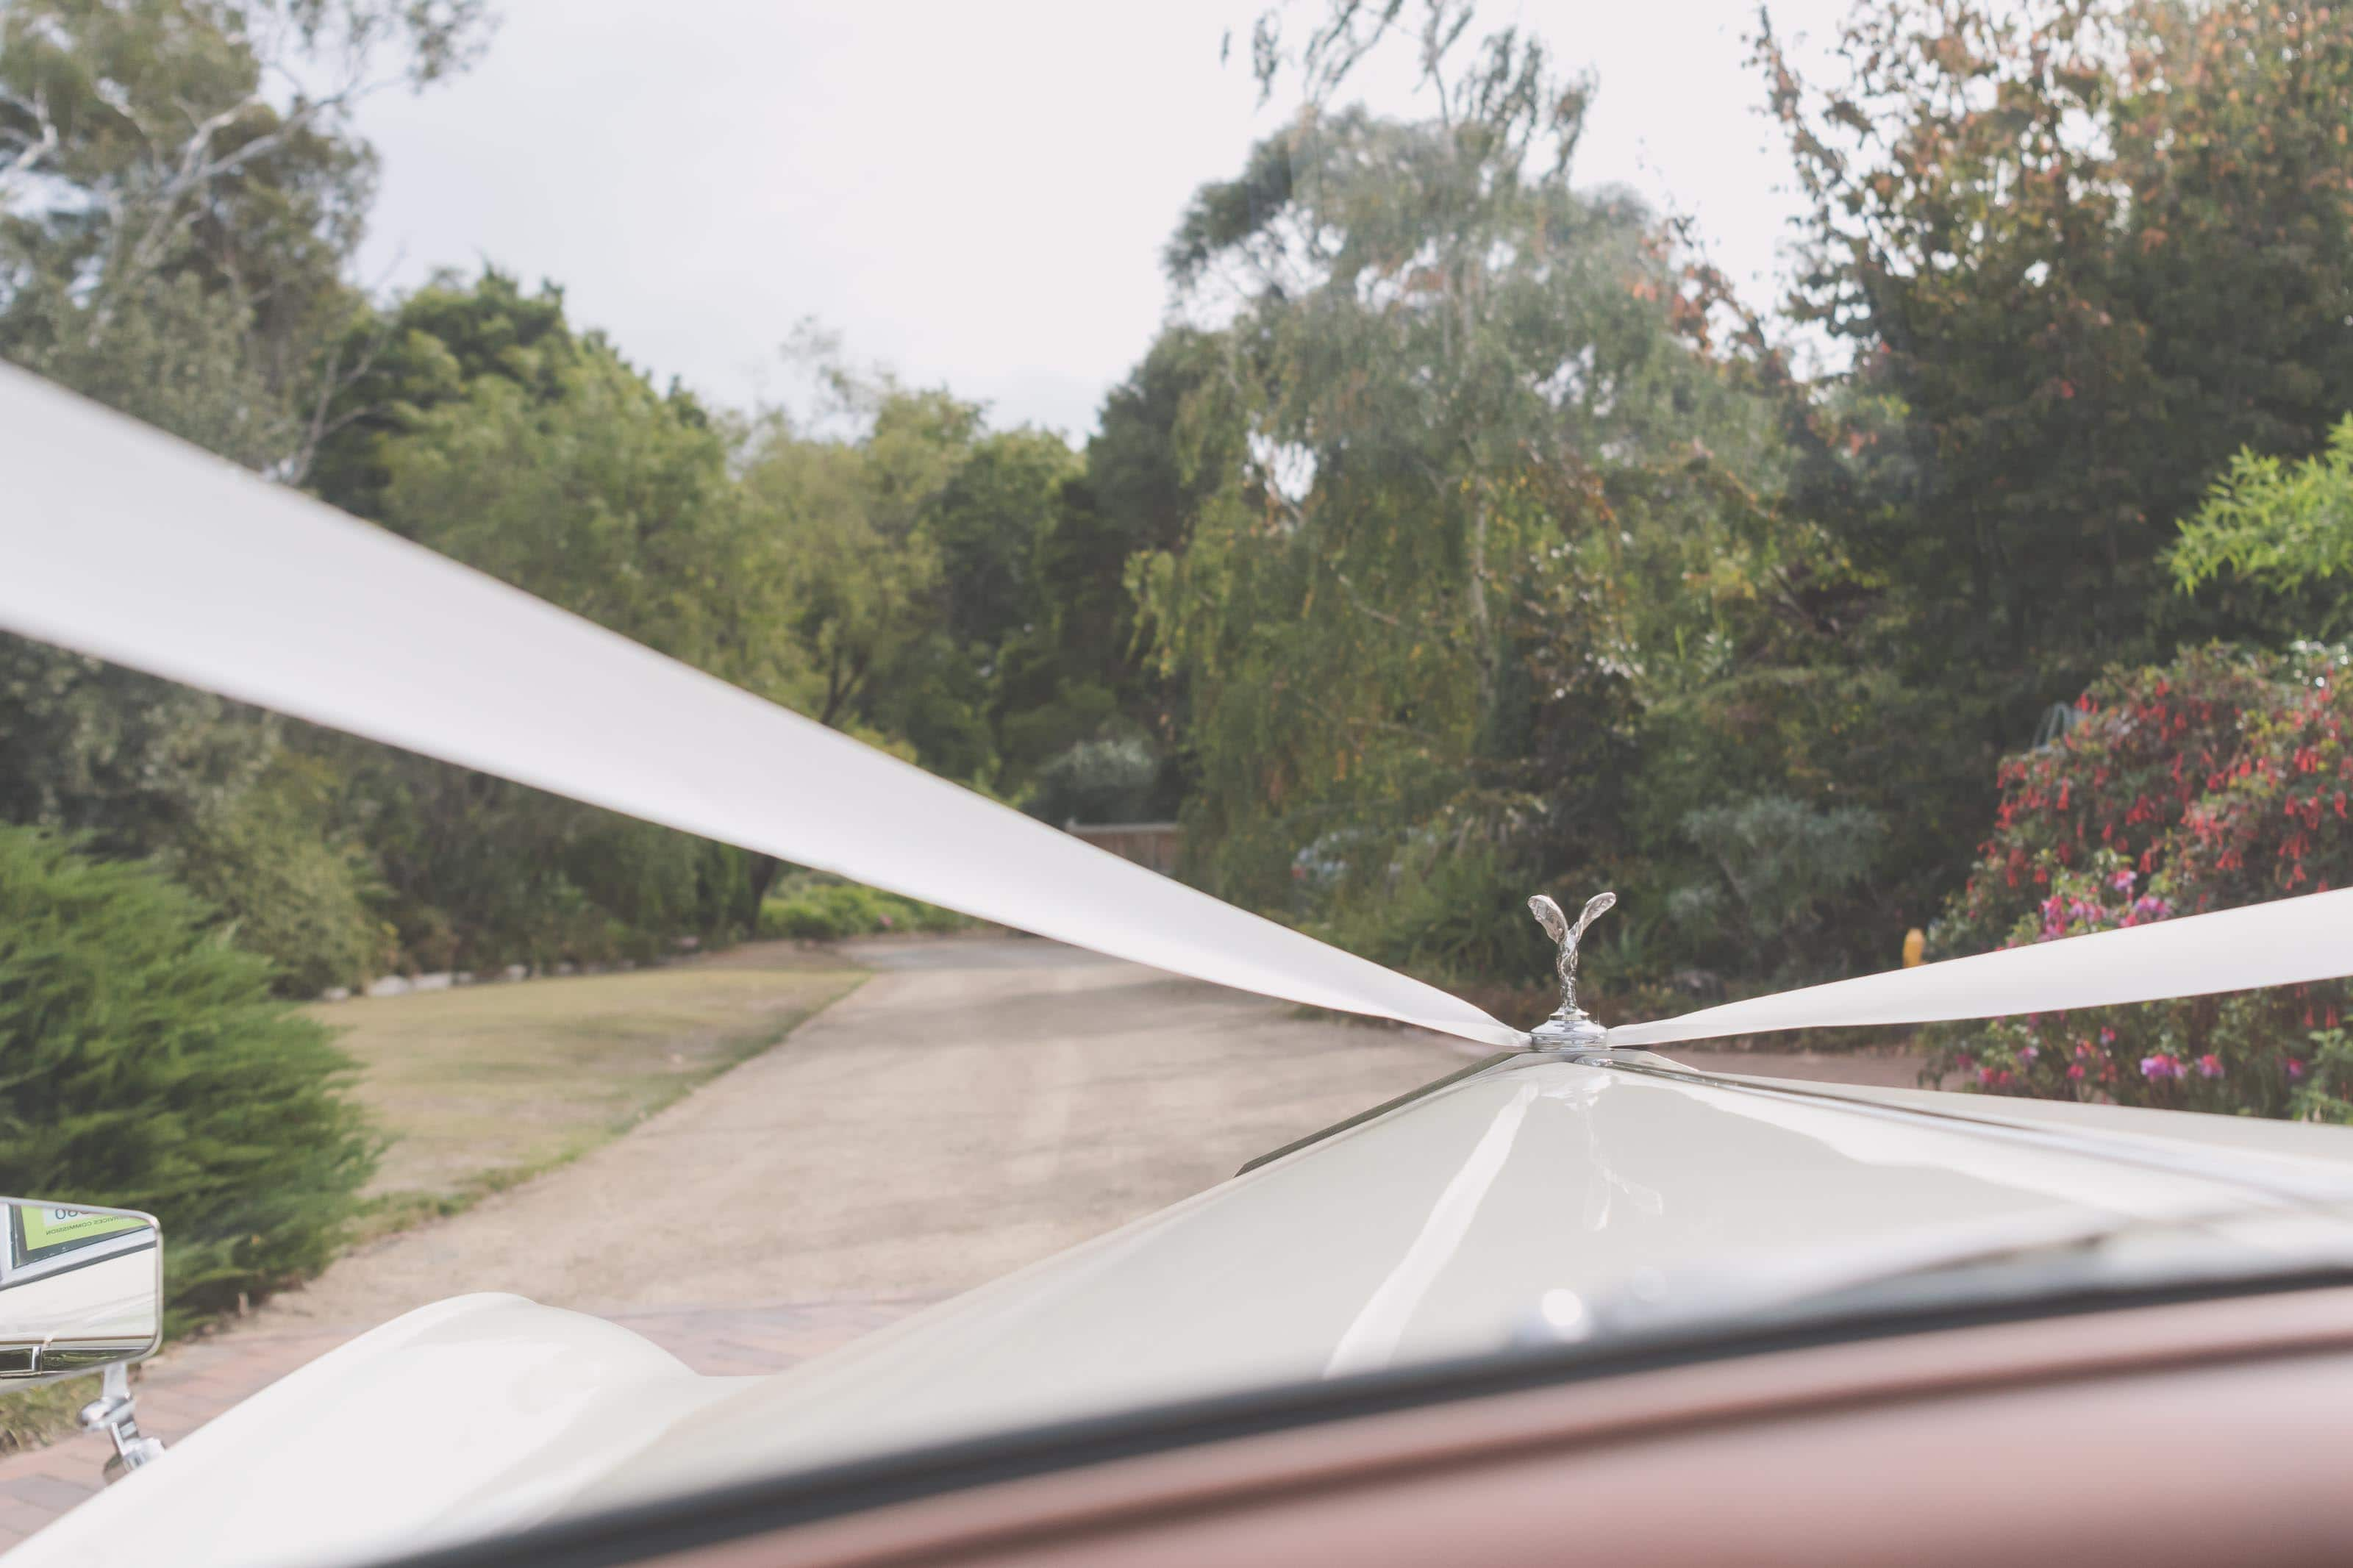 Wedding Photography Melbourne by Pause The Moment - The view from the front seat of a Rolls Royce - Paringa Estate Wedding Photographer